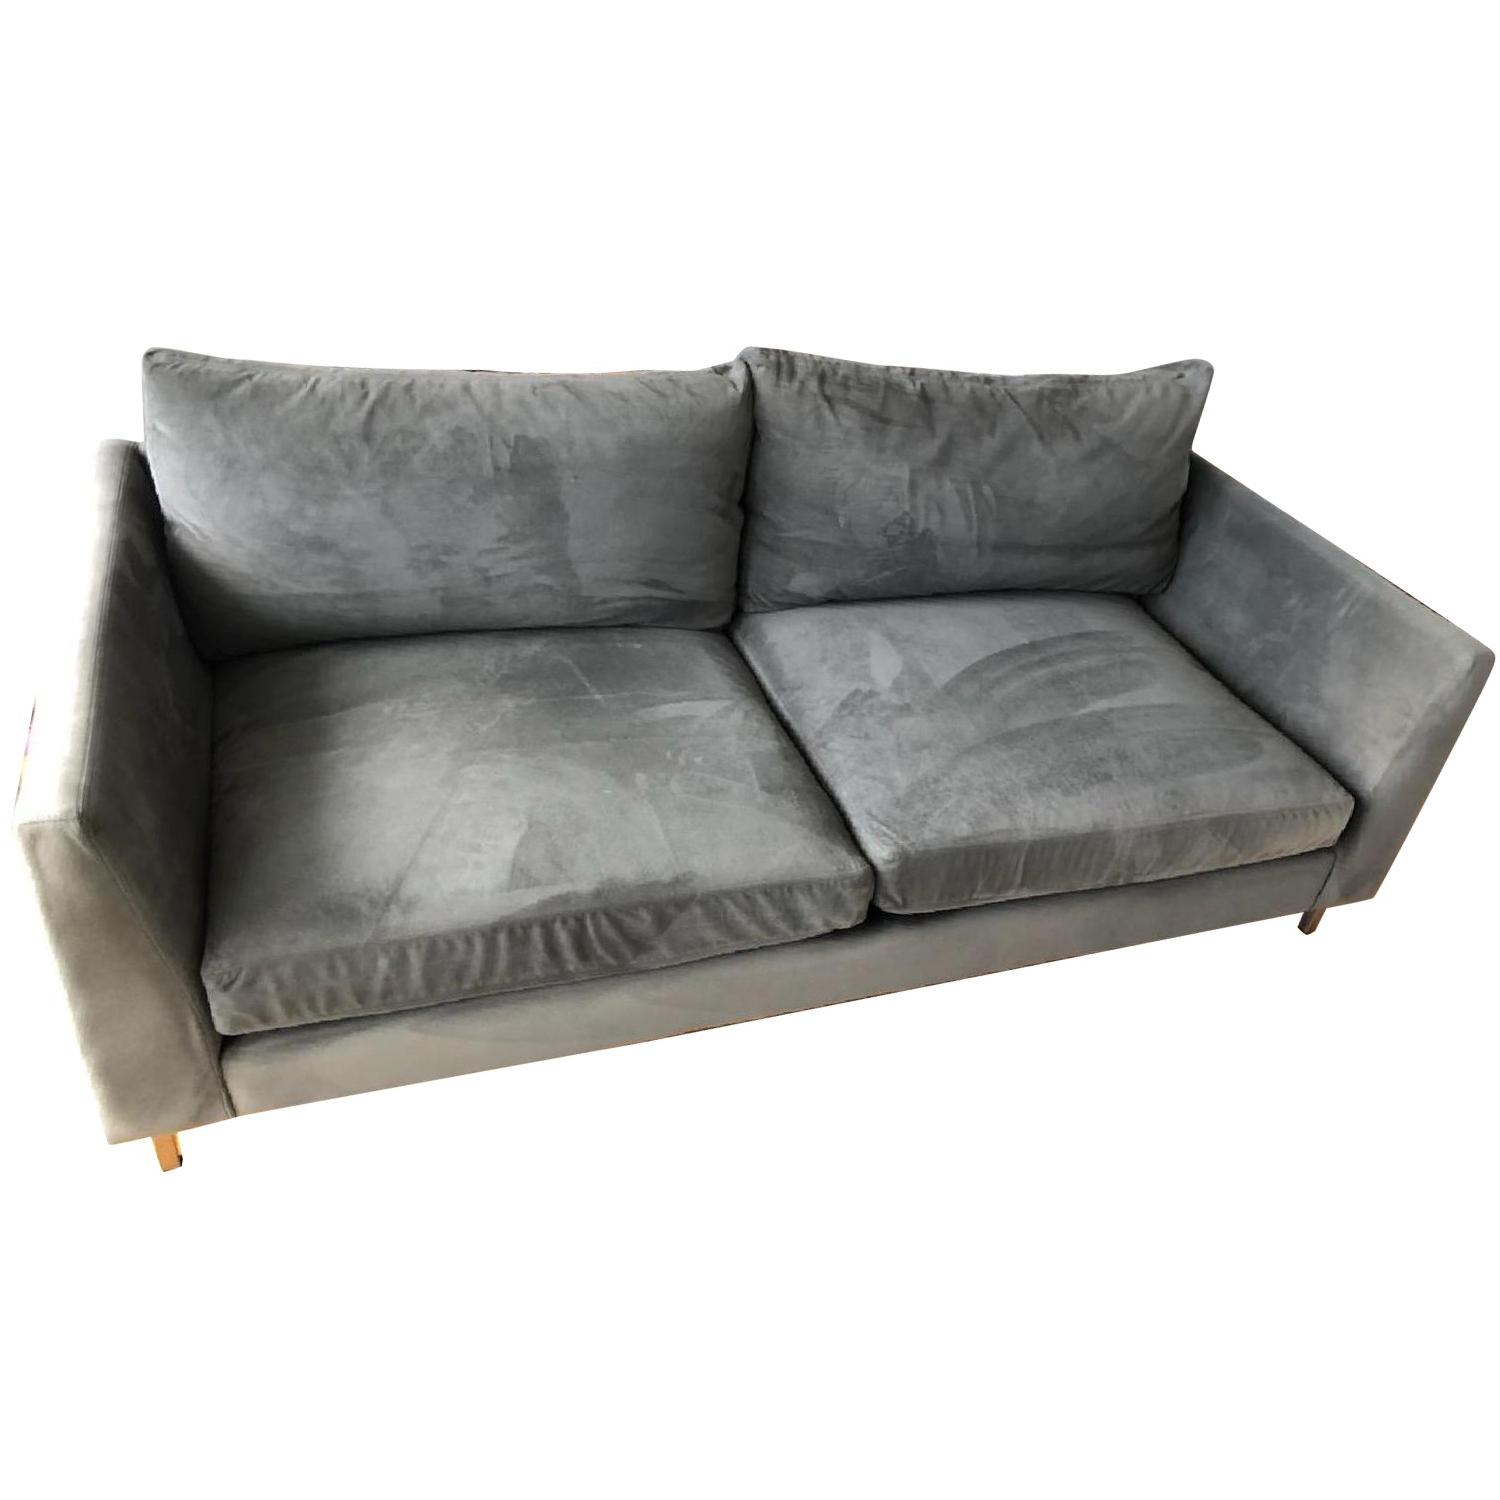 Room & Board 2 Seater Sofa